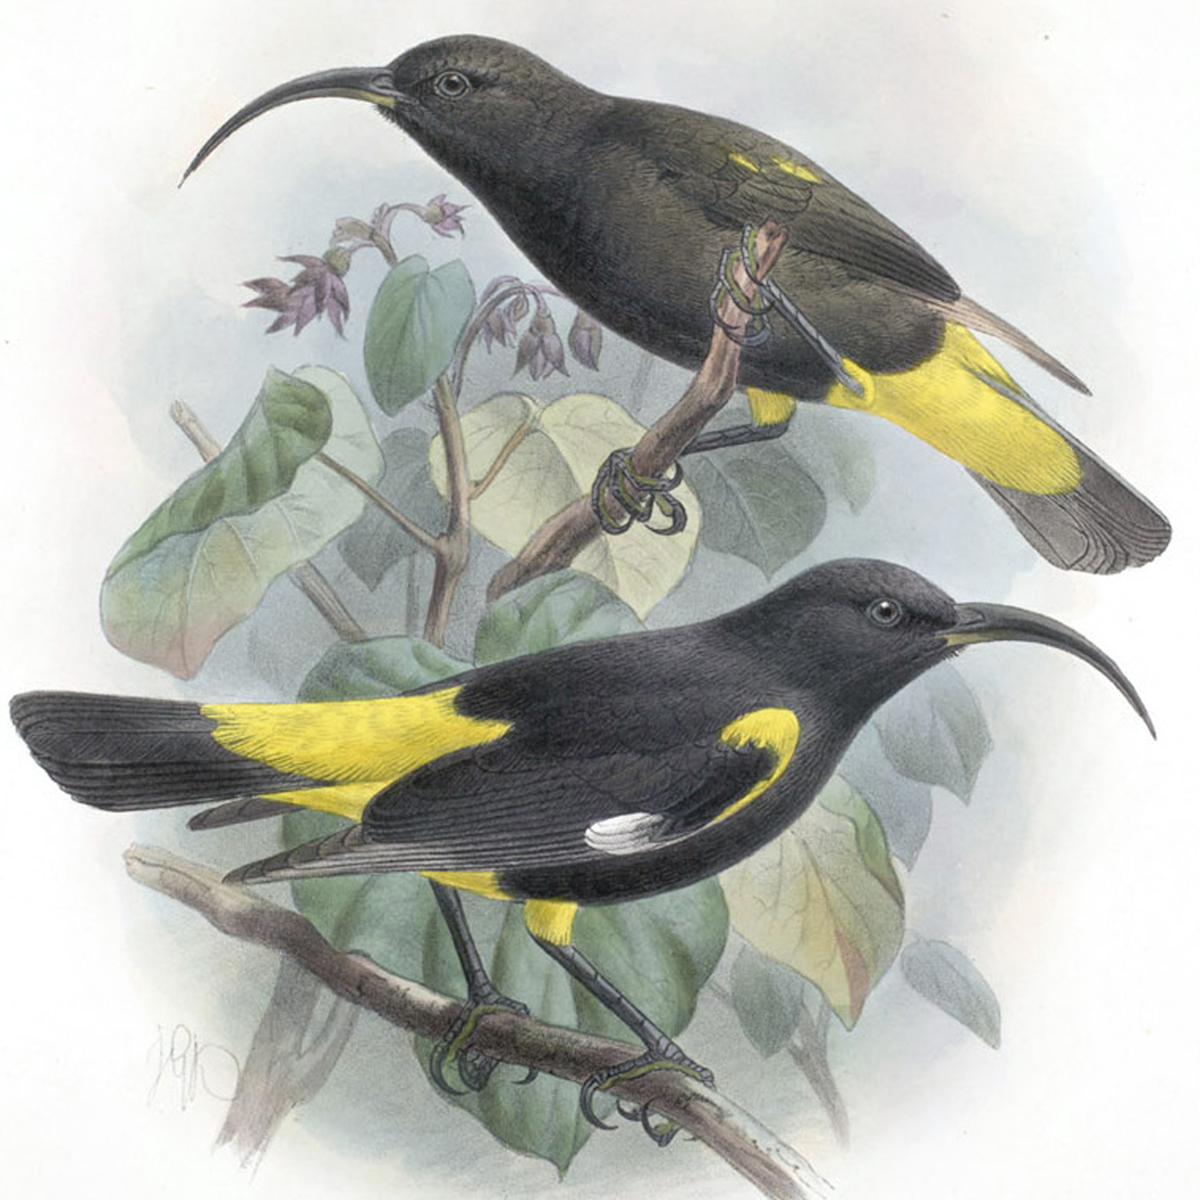 [Mamo] Artwork by John Gerrard Keulemans. Public domain.